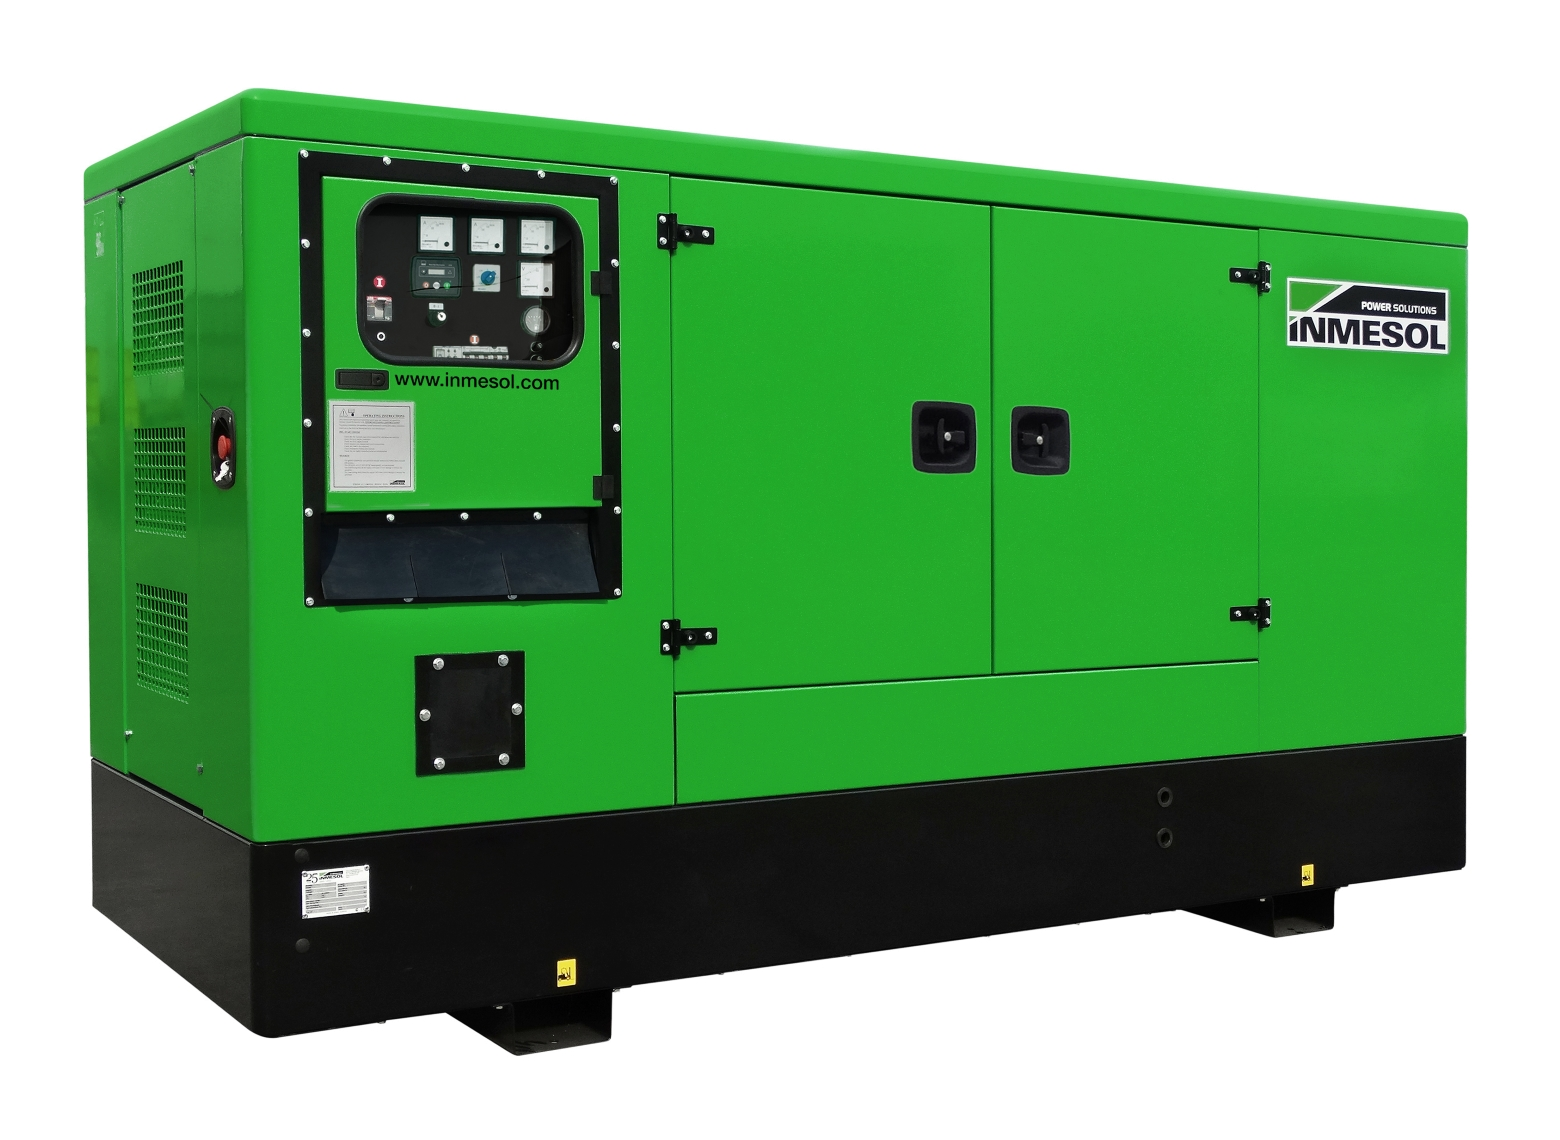 Generator with manual control panel.II-165 - FPT - N67SM1(60HZ) - 1.800 R.P.M. | 60 Hz